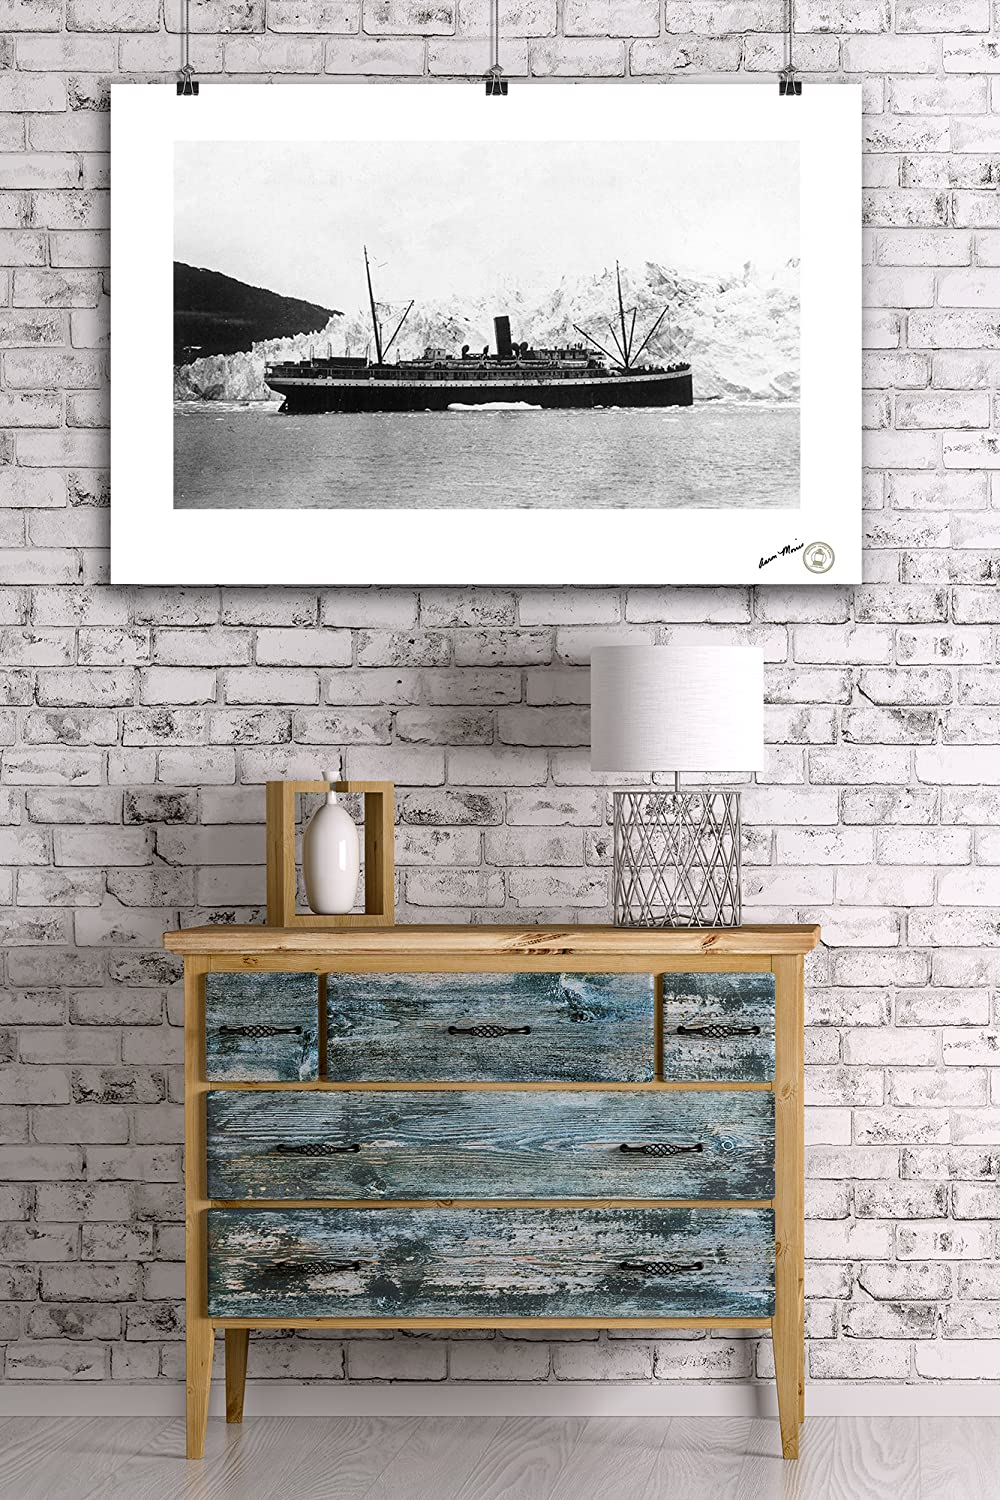 Columbia Glacier 24x36 Giclee Gallery Print, Wall Decor Travel Poster Alaska View of a Steamer in Front of Glacier